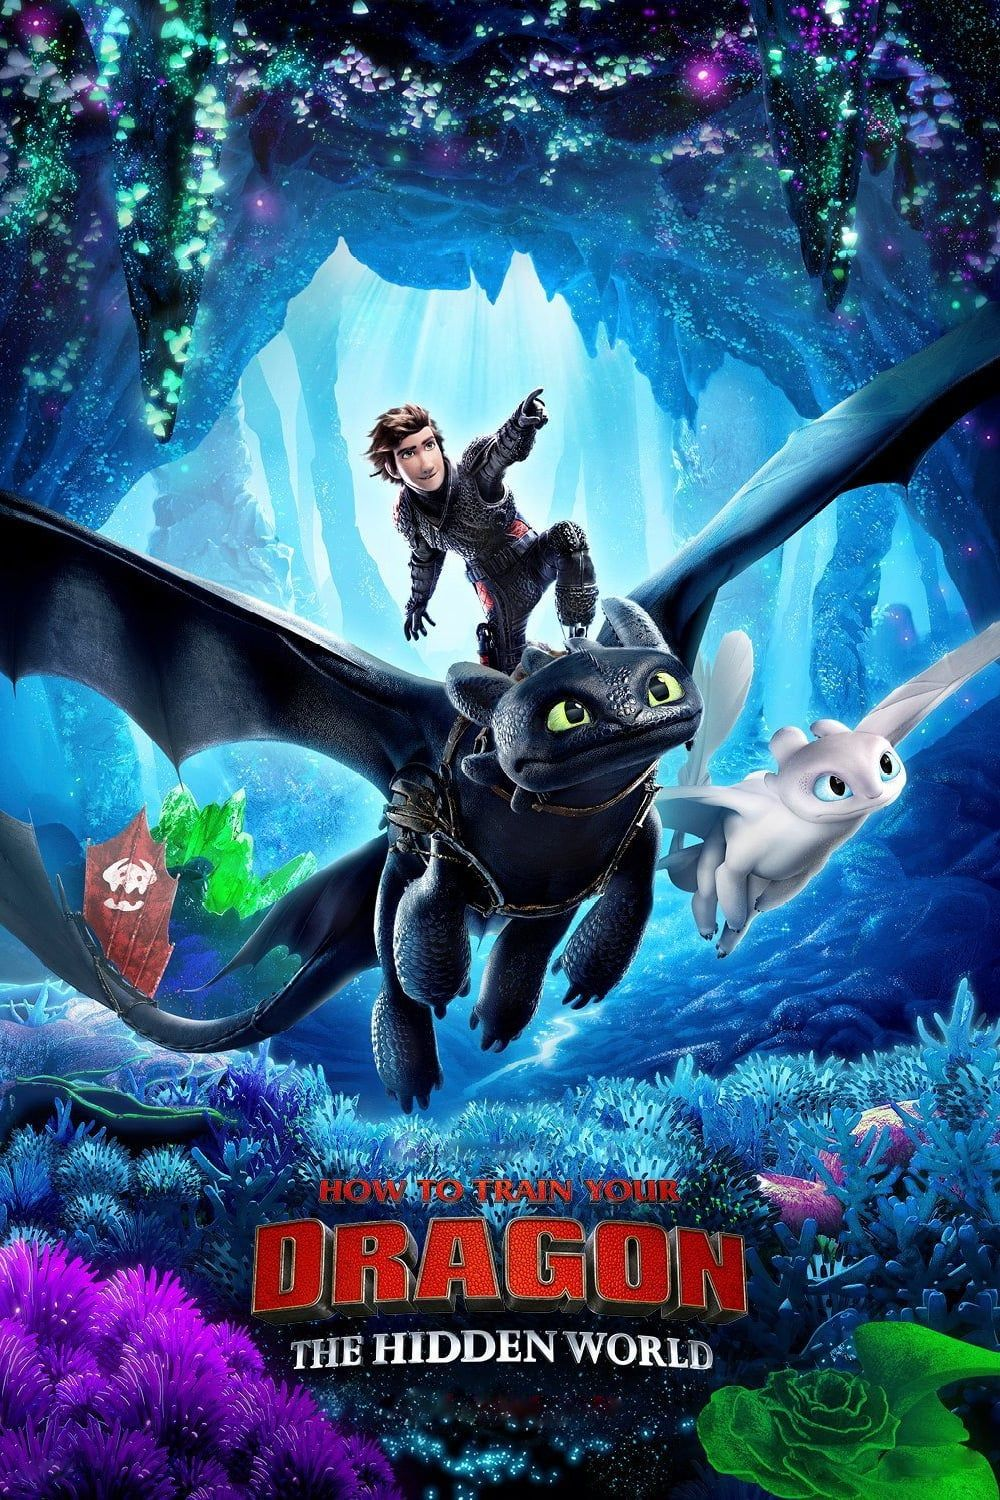 How to Train Your Dragon 3 Wall Movie Poster  8x10 11x17 16x20 22x28 24x36 27x40